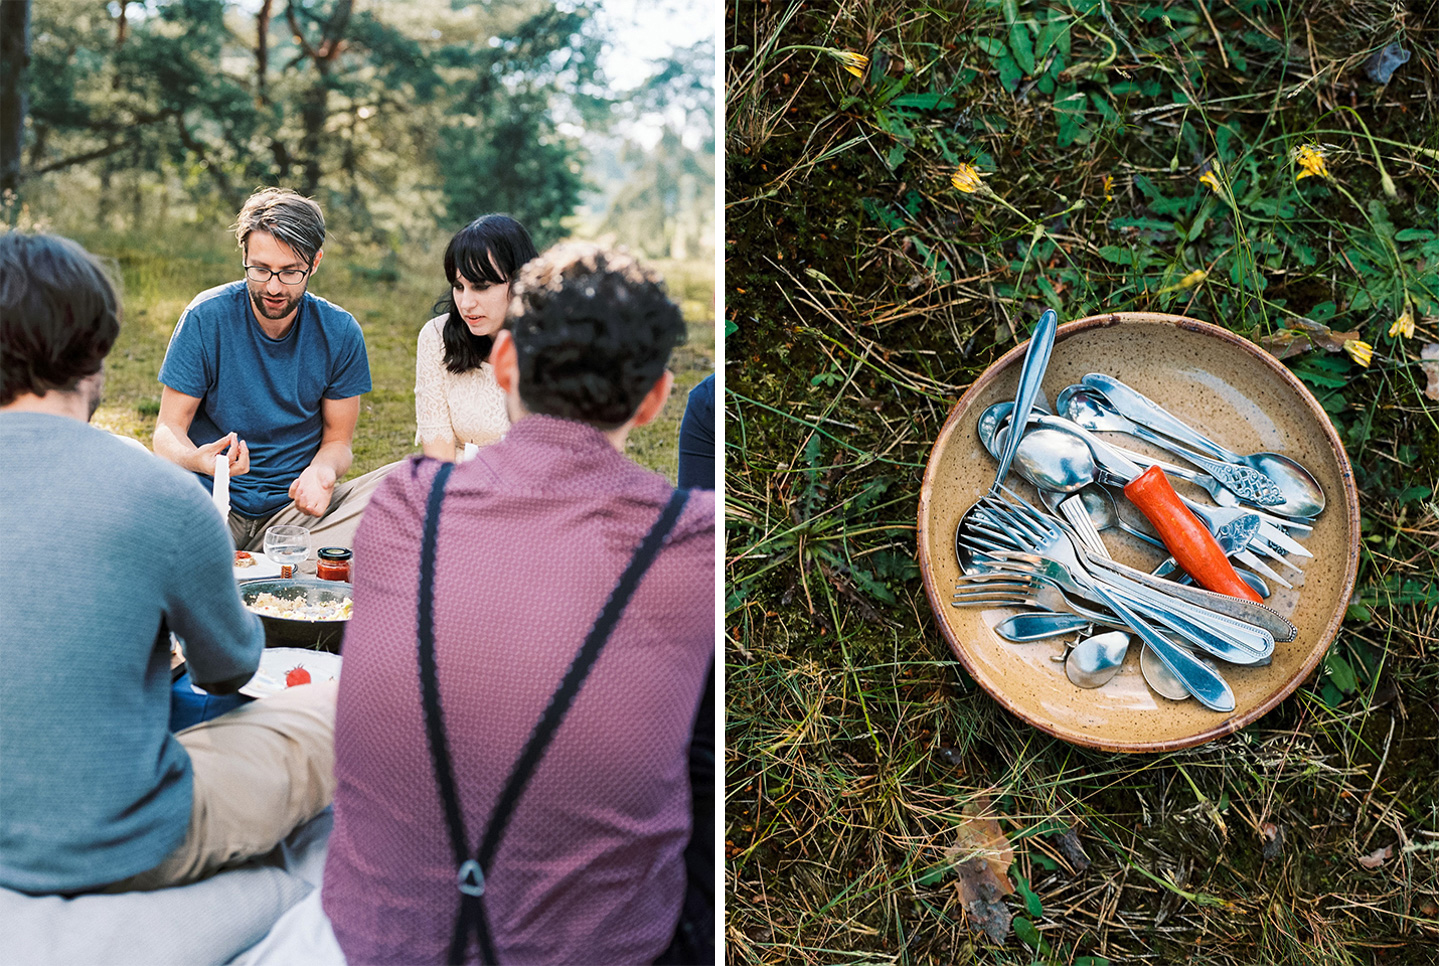 forest-picnic-with-friends-inspire-styling-hanke-arkenbout-photography-77a.jpg